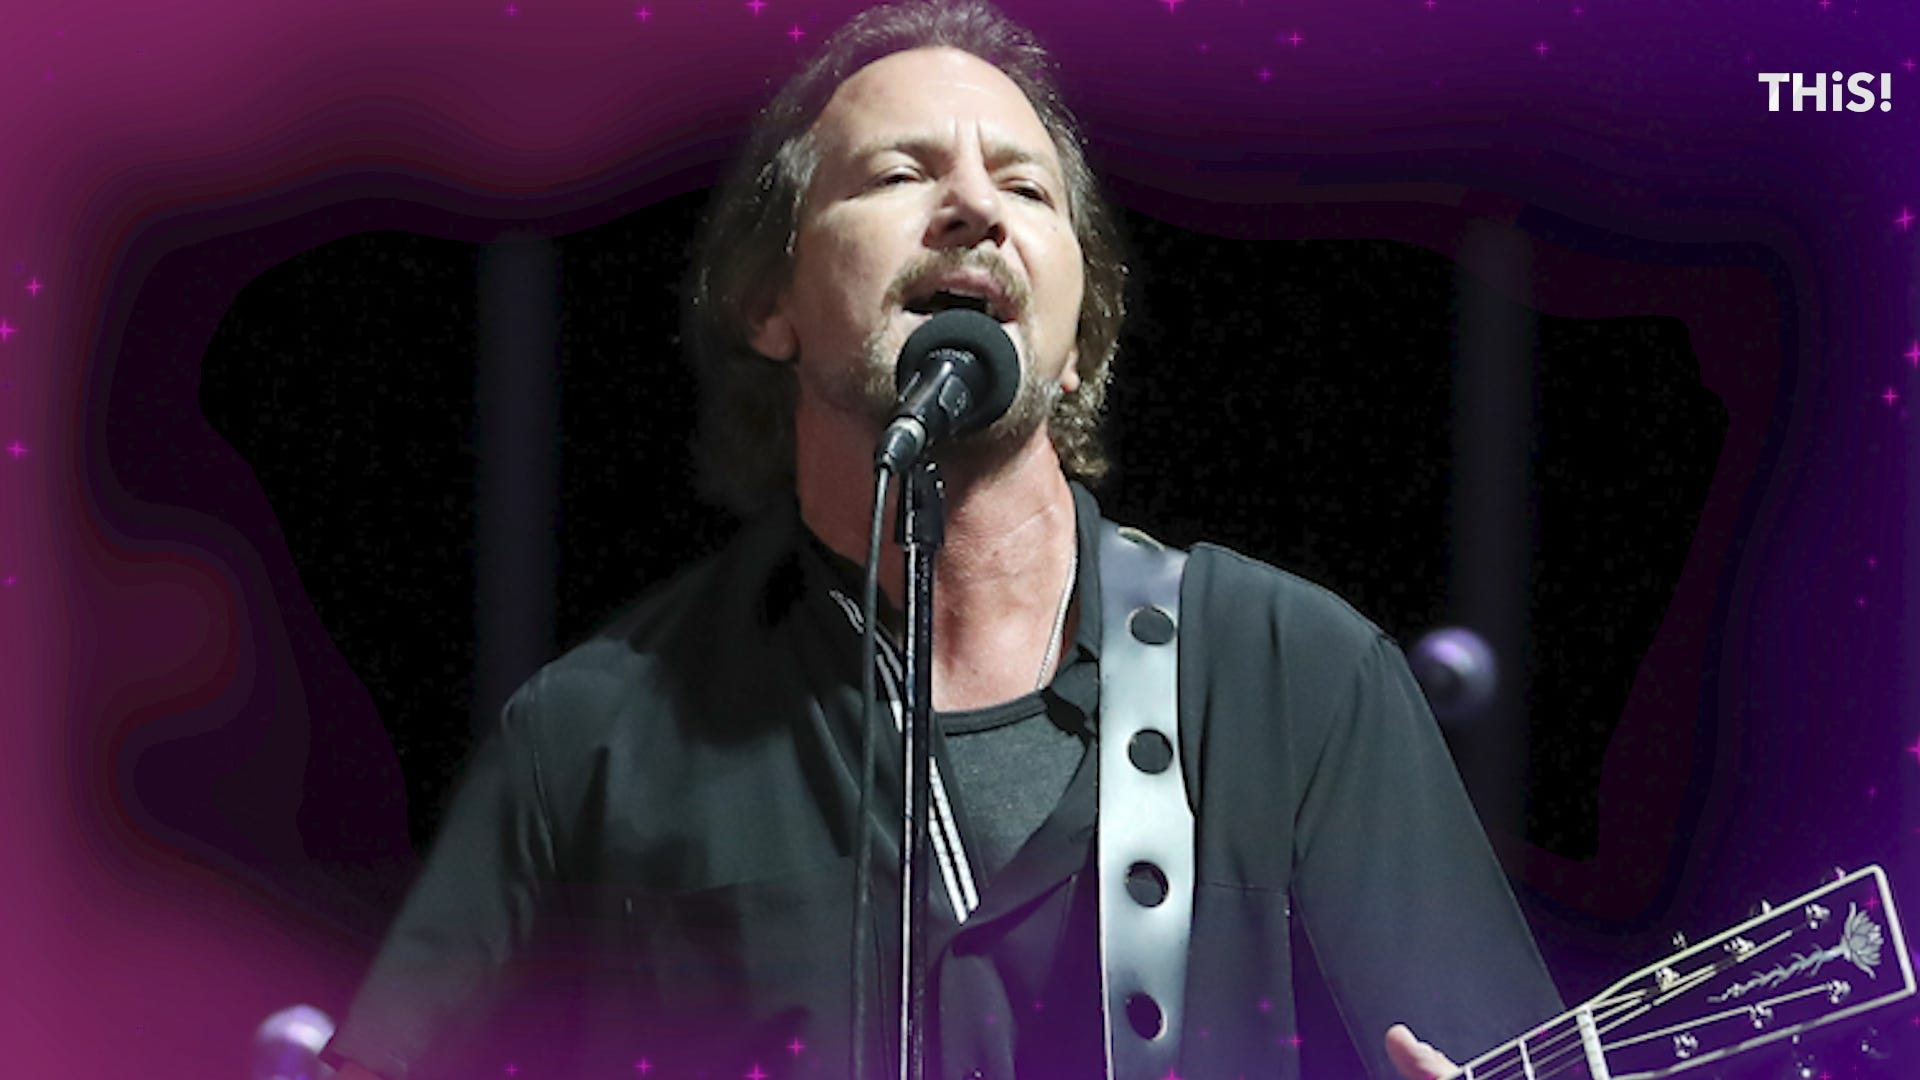 Pearl Jam returns with a new album after seven years